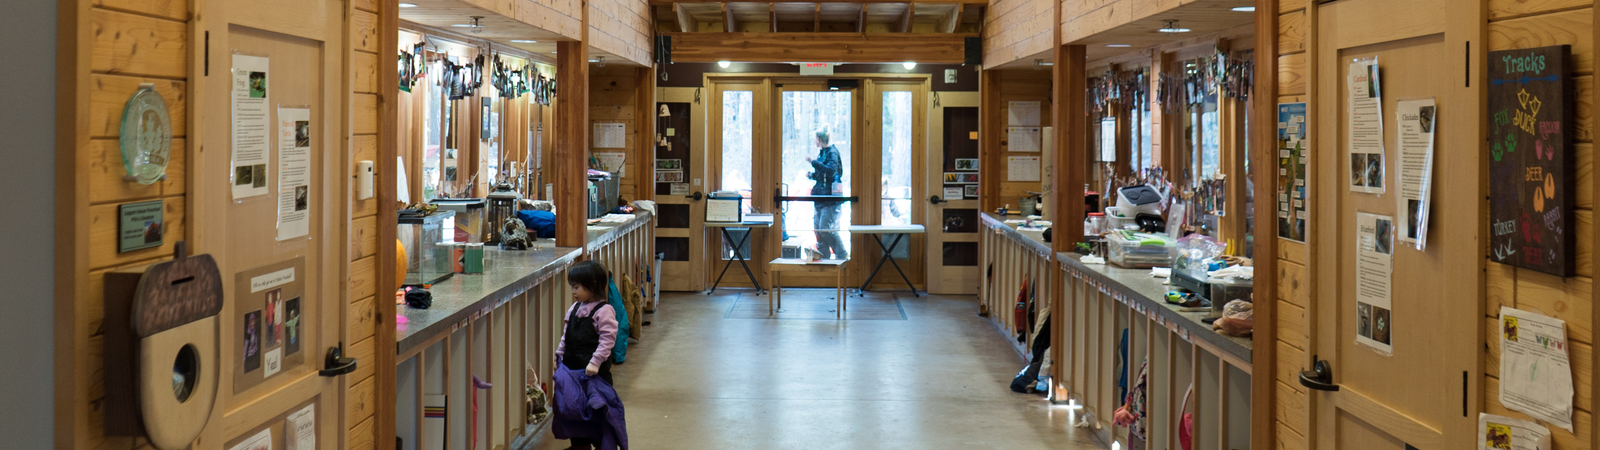 Inside the nature preschool at Chippewa Nature Center